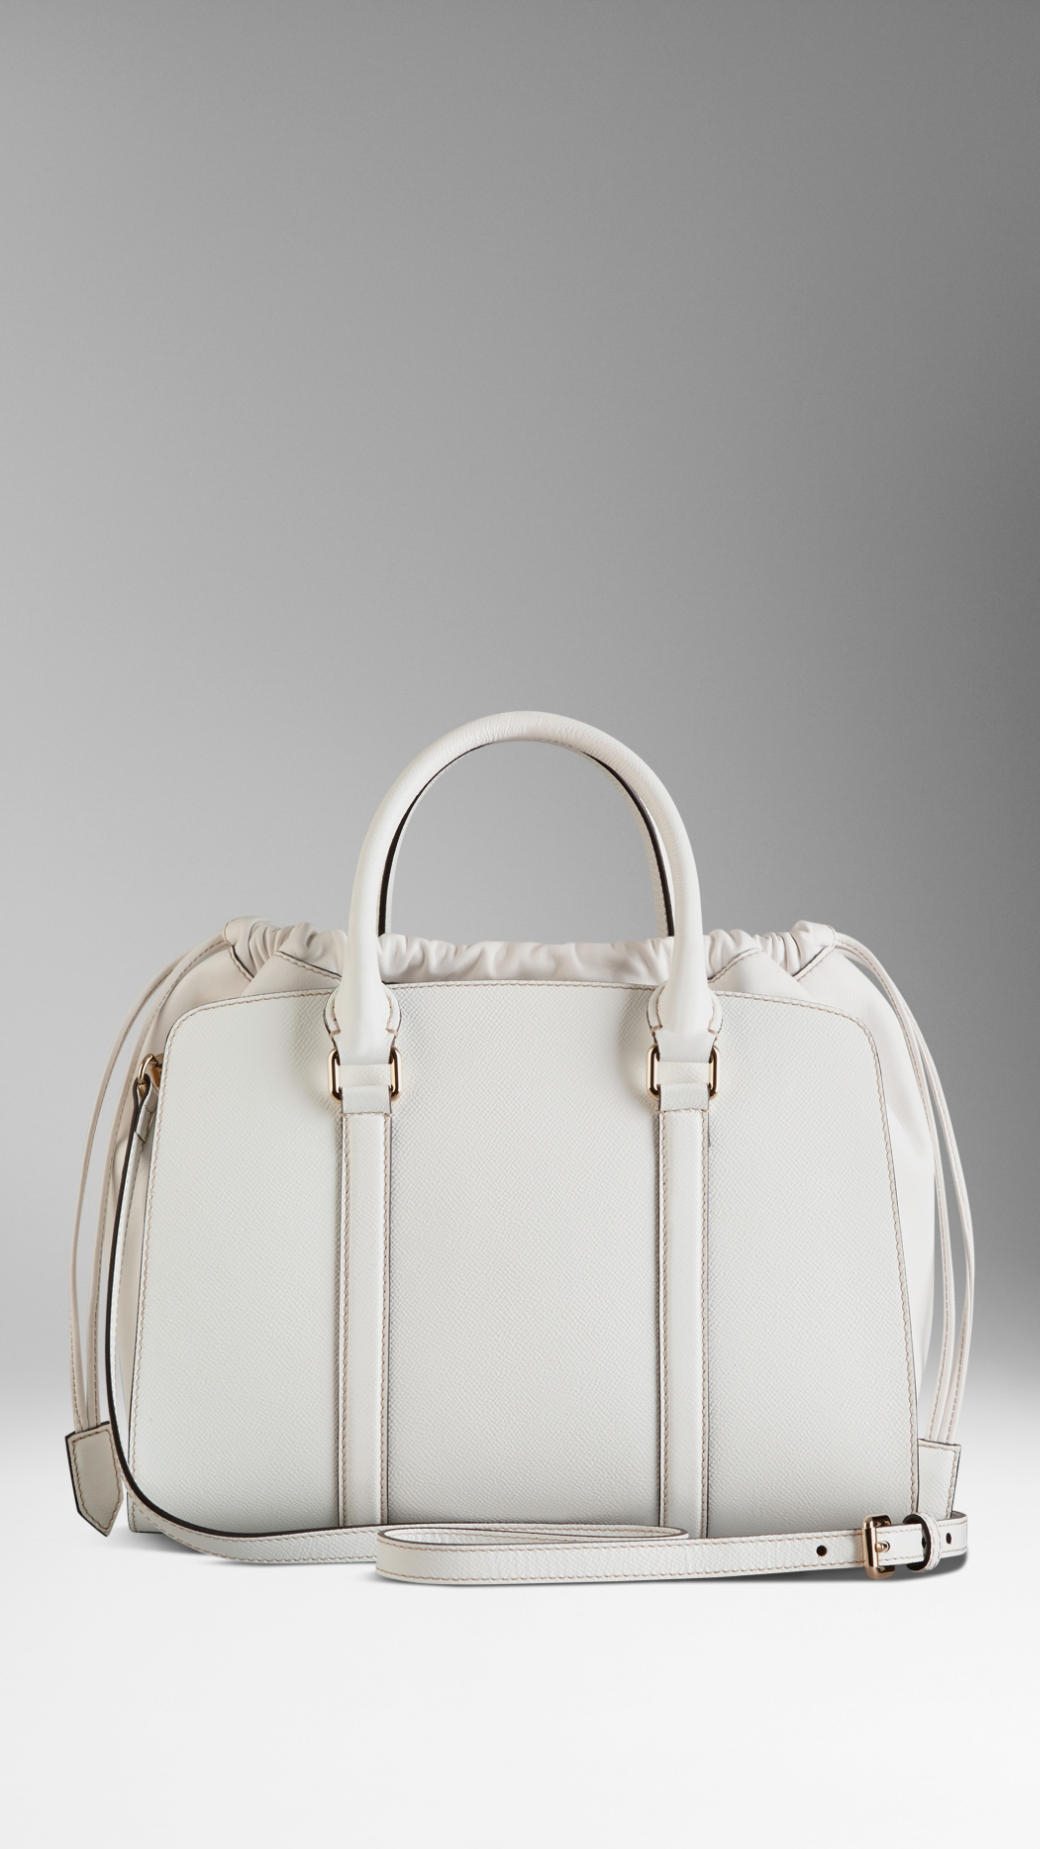 c8780e69a62 Lyst - Burberry Medium Patent London Leather Bag in White